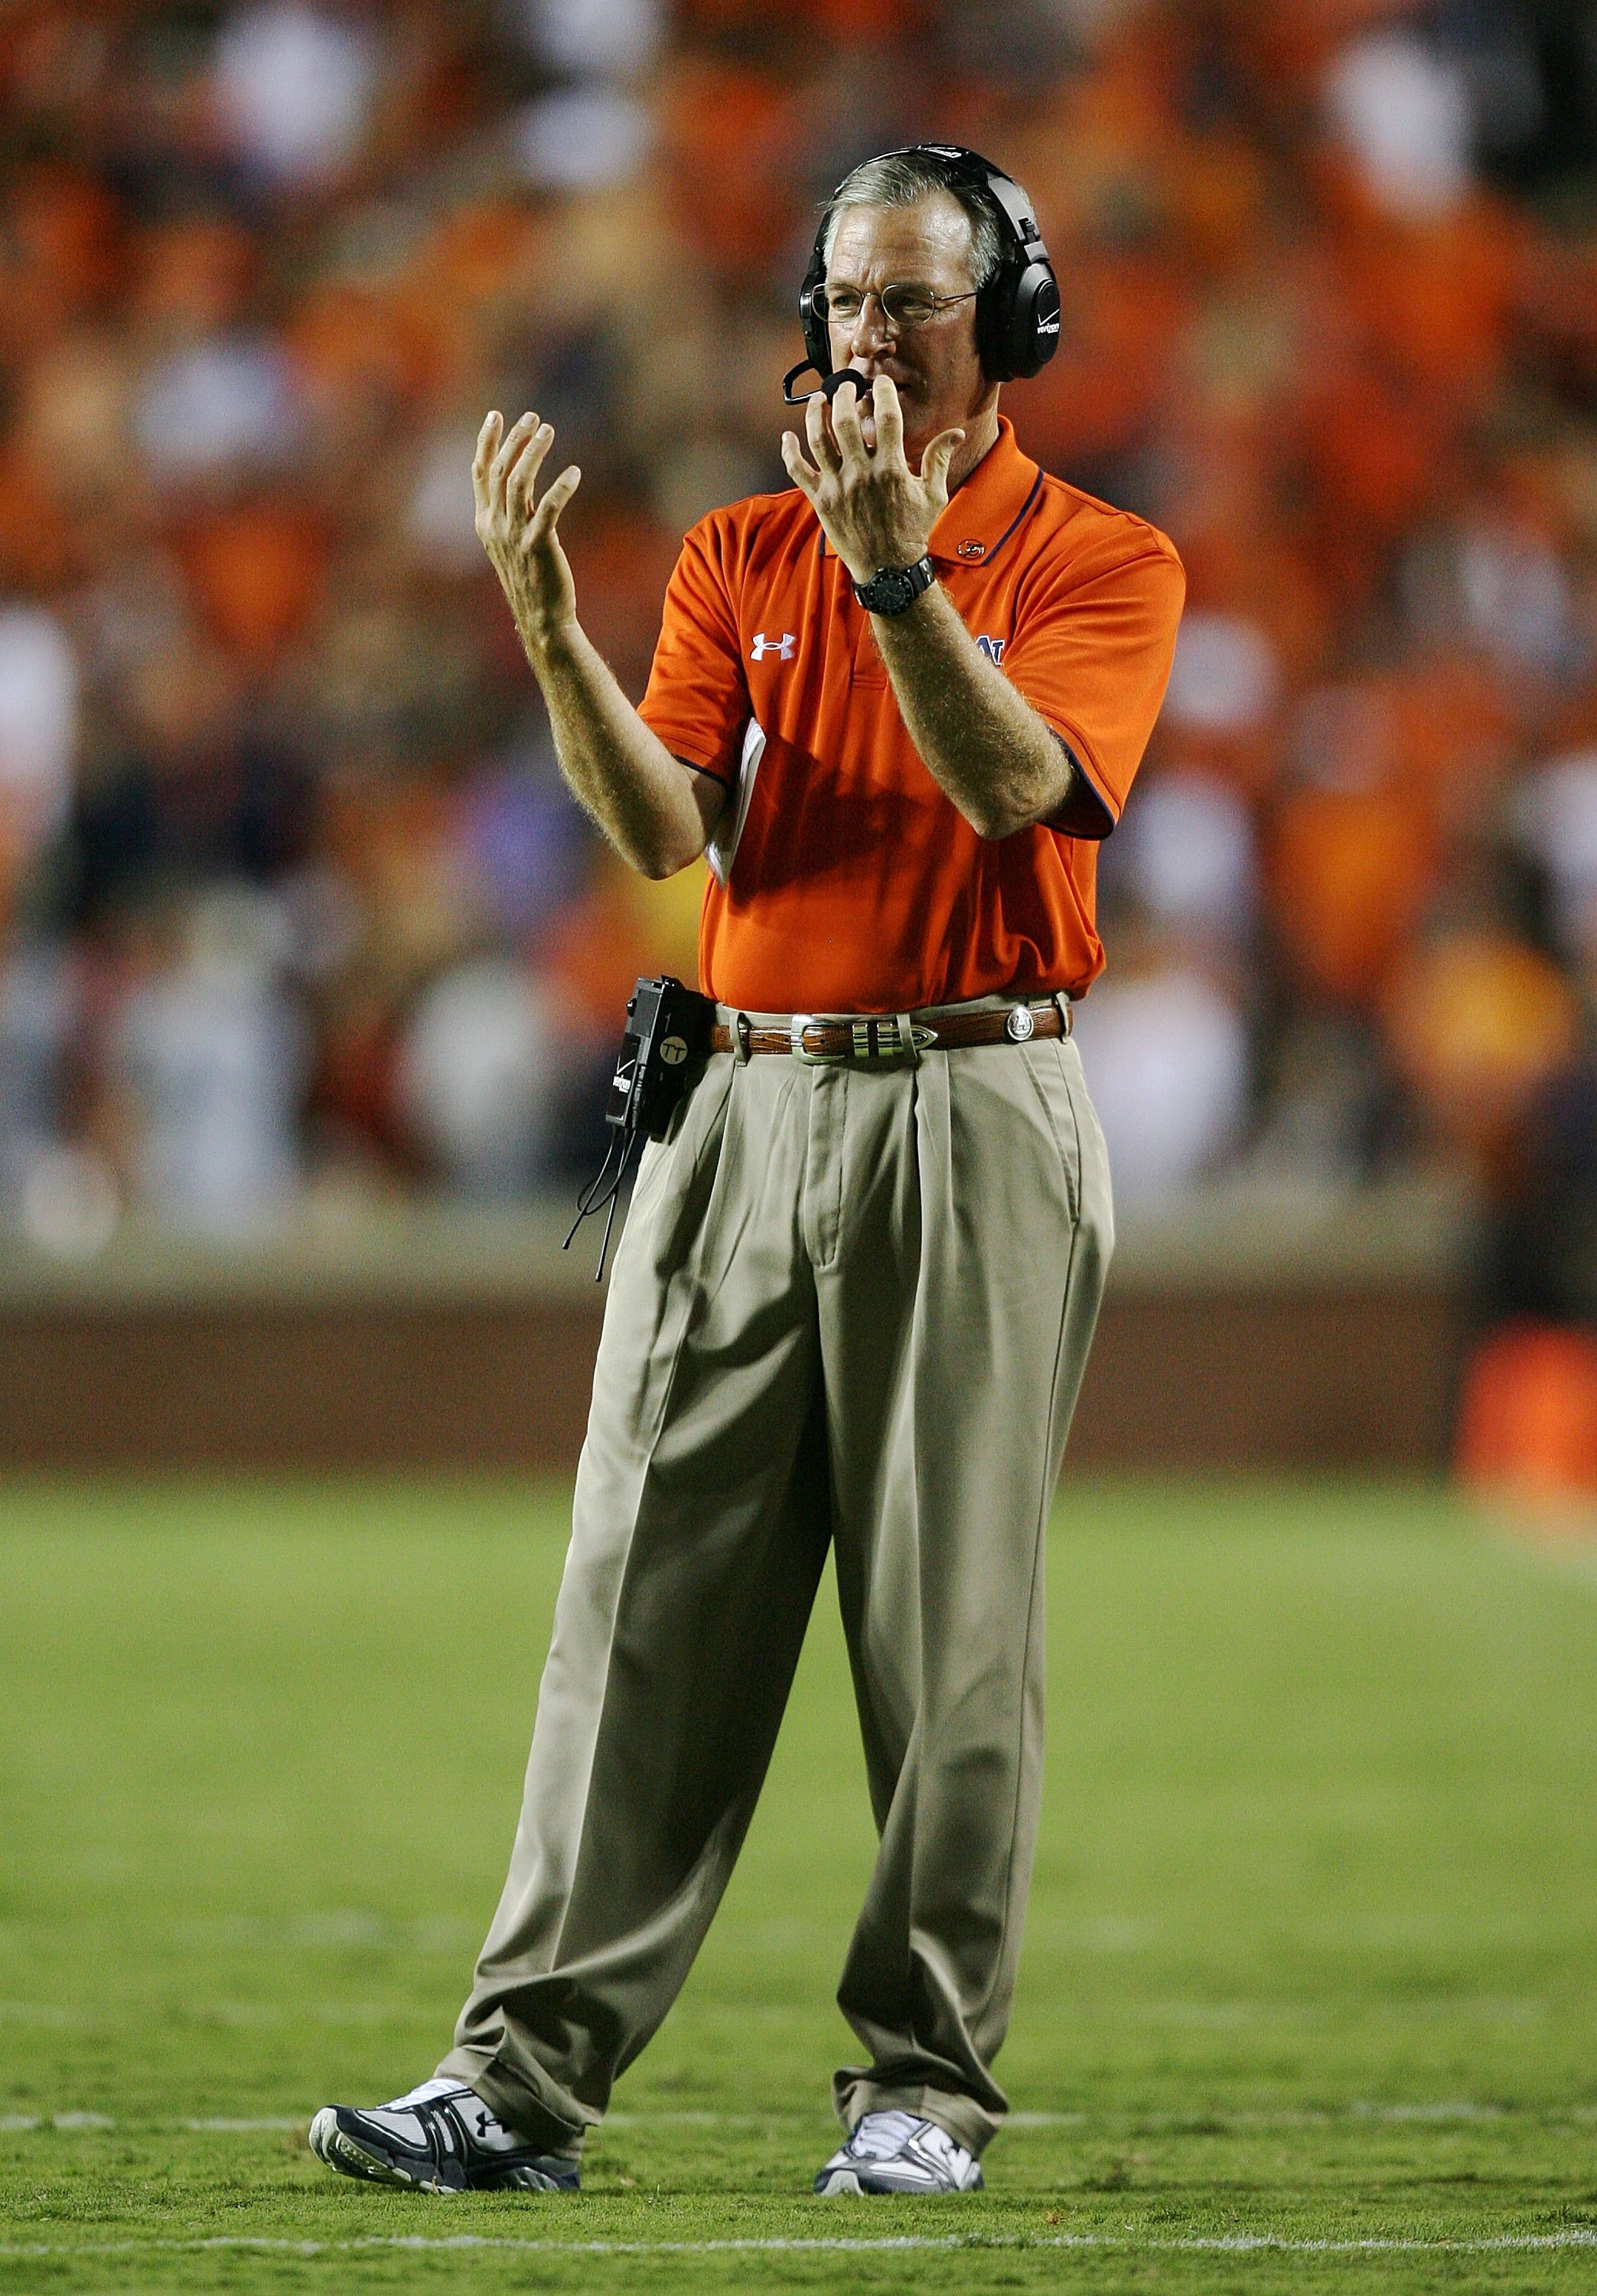 AUBURN, AL - SEPTEMBER 20:  Head coach Tommy Tuberville of the Auburn Tigers directs his team take on the LSU Tigers at Jordan-Hare Stadium on September 20, 2008 in Auburn, Alabama. LSU defeated Auburn 26-21.  (Photo by Doug Benc/Getty Images)